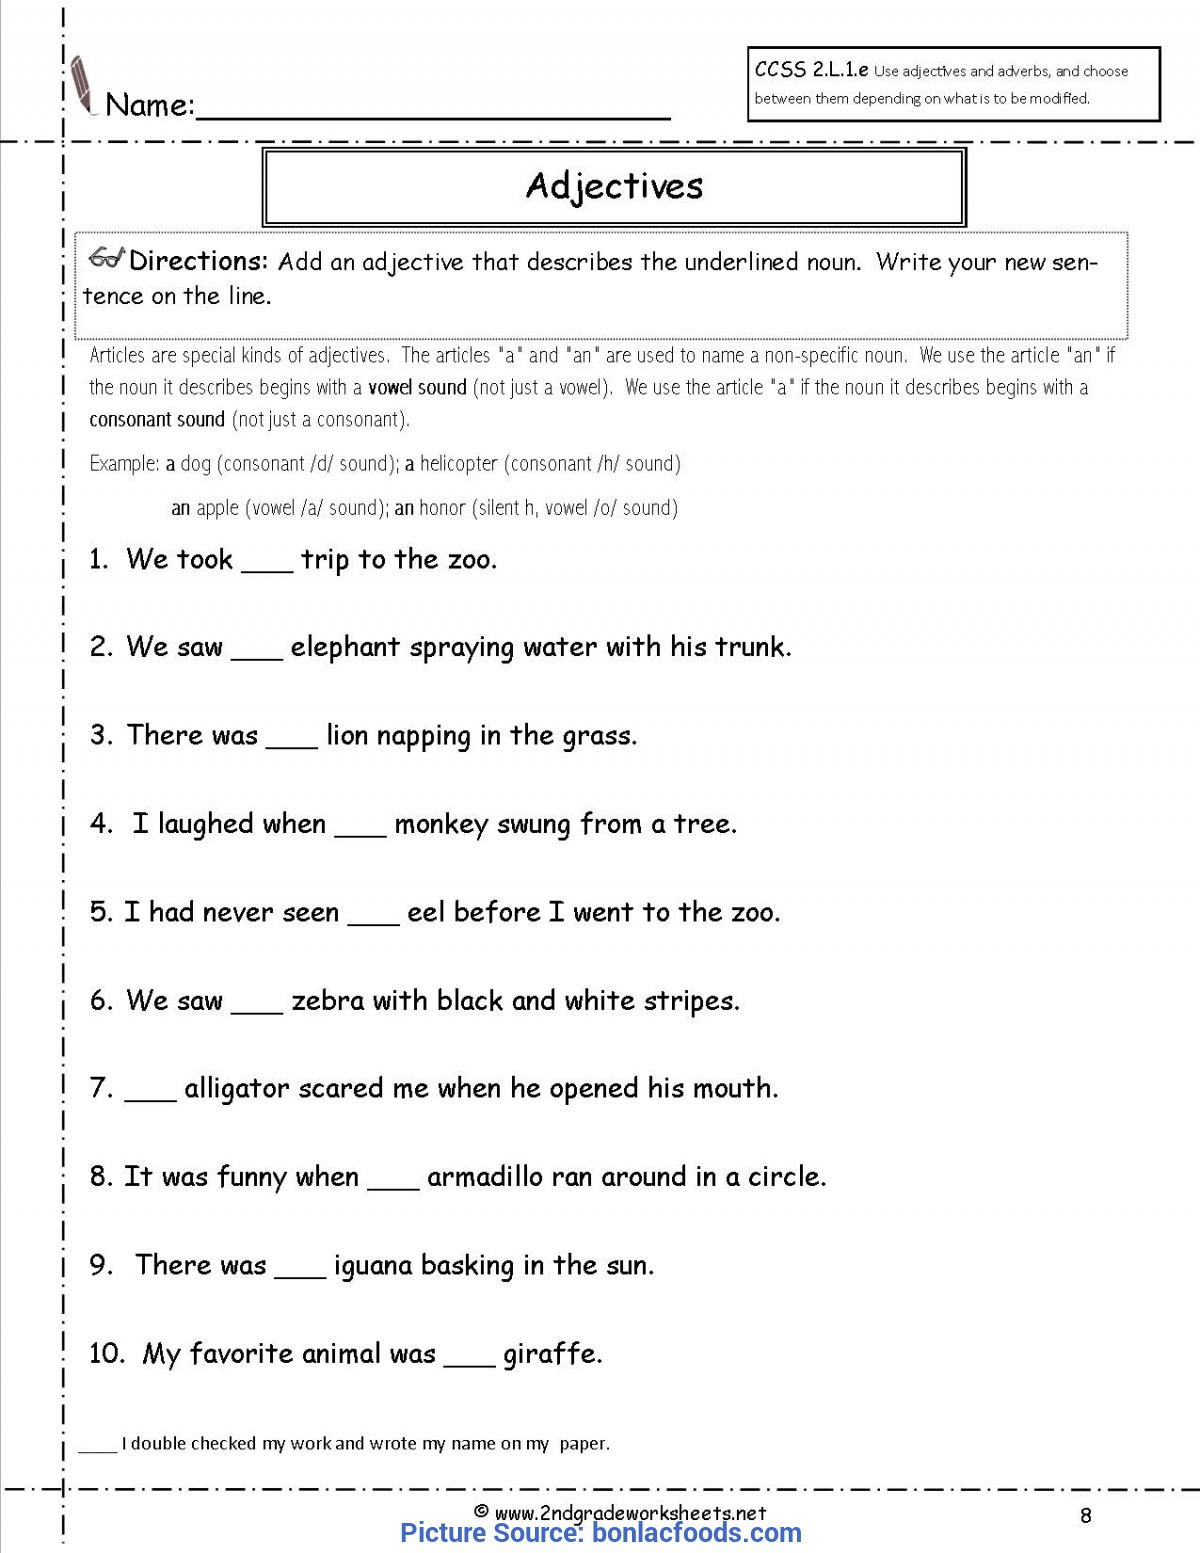 Adjectives Worksheets for Grade 2 Valuable 2nd Grade Lesson Plans Adjectives Worksheets for